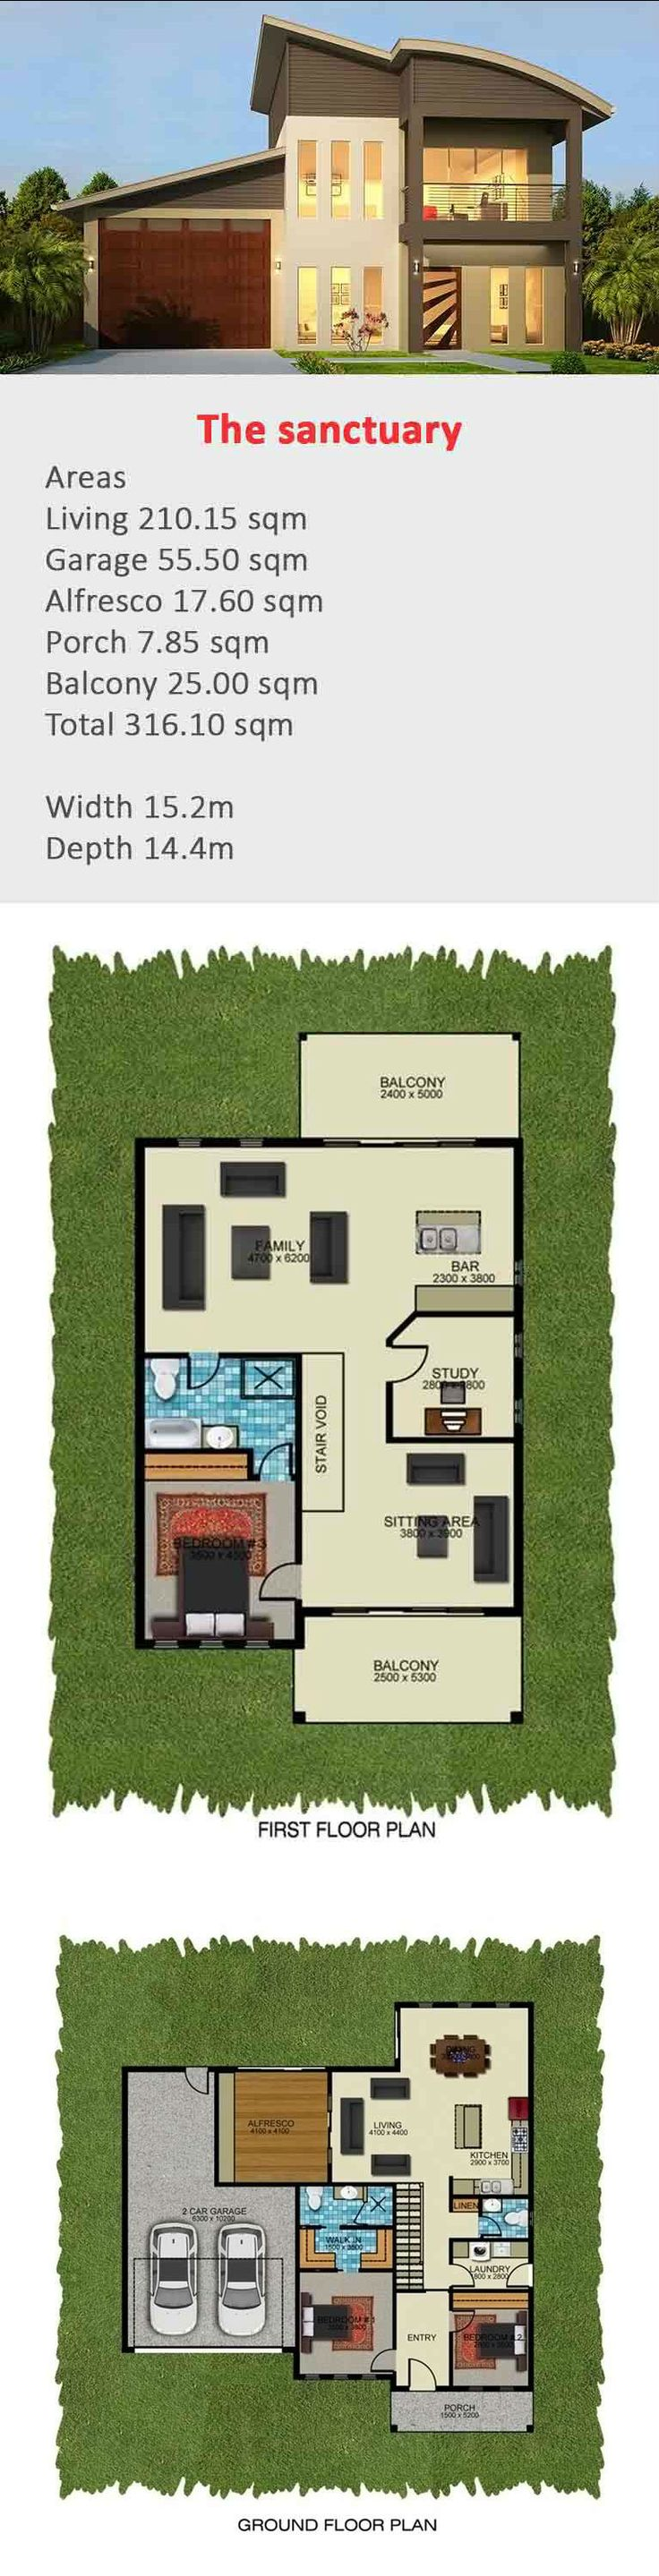 stunning new single floor house plans. For stunning new properties designed by professionals you can trust in  South Australia call Coast to Homes Pty Ltd on 08 8825 2481 today 58 best House Designs images Pinterest design and